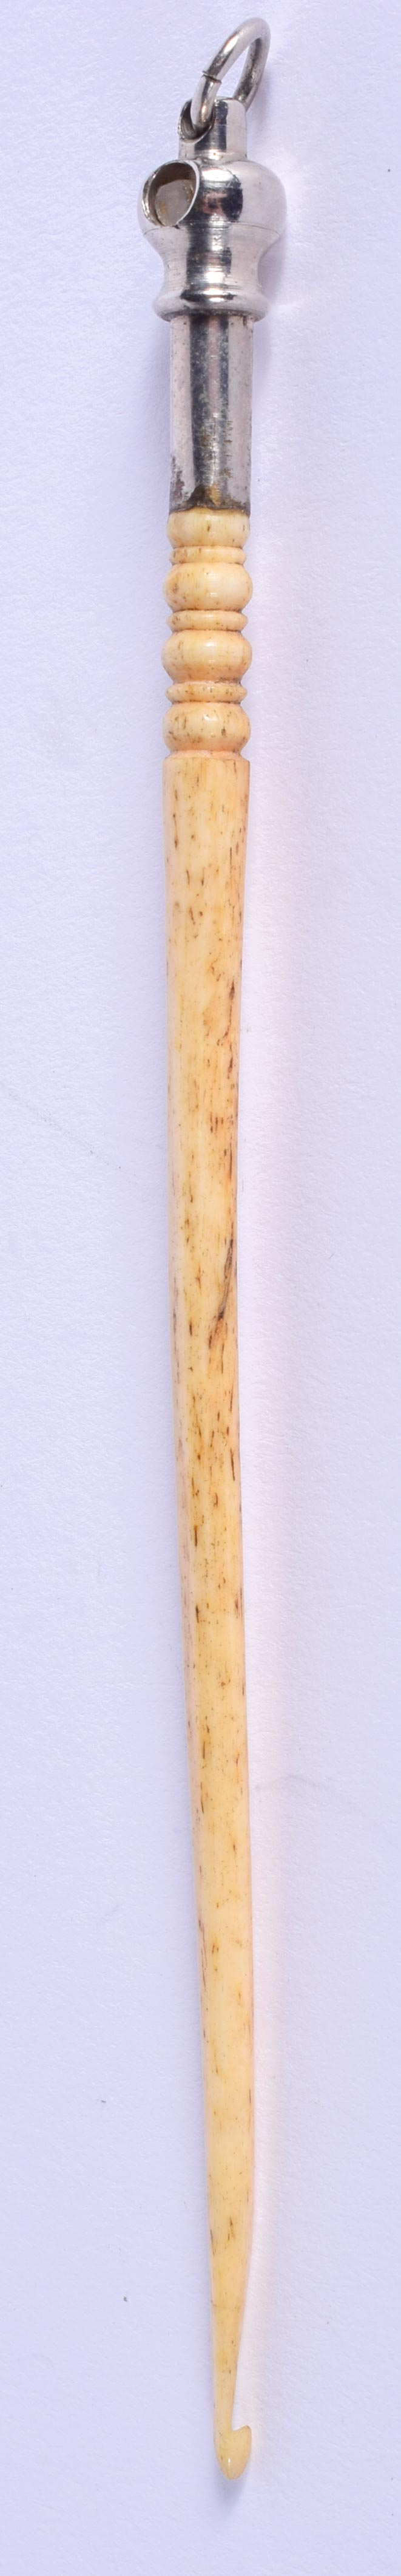 A RARE ANTIQUE BONE STANHOPE a memory of Rothesay. 12 cm long. - Image 2 of 3